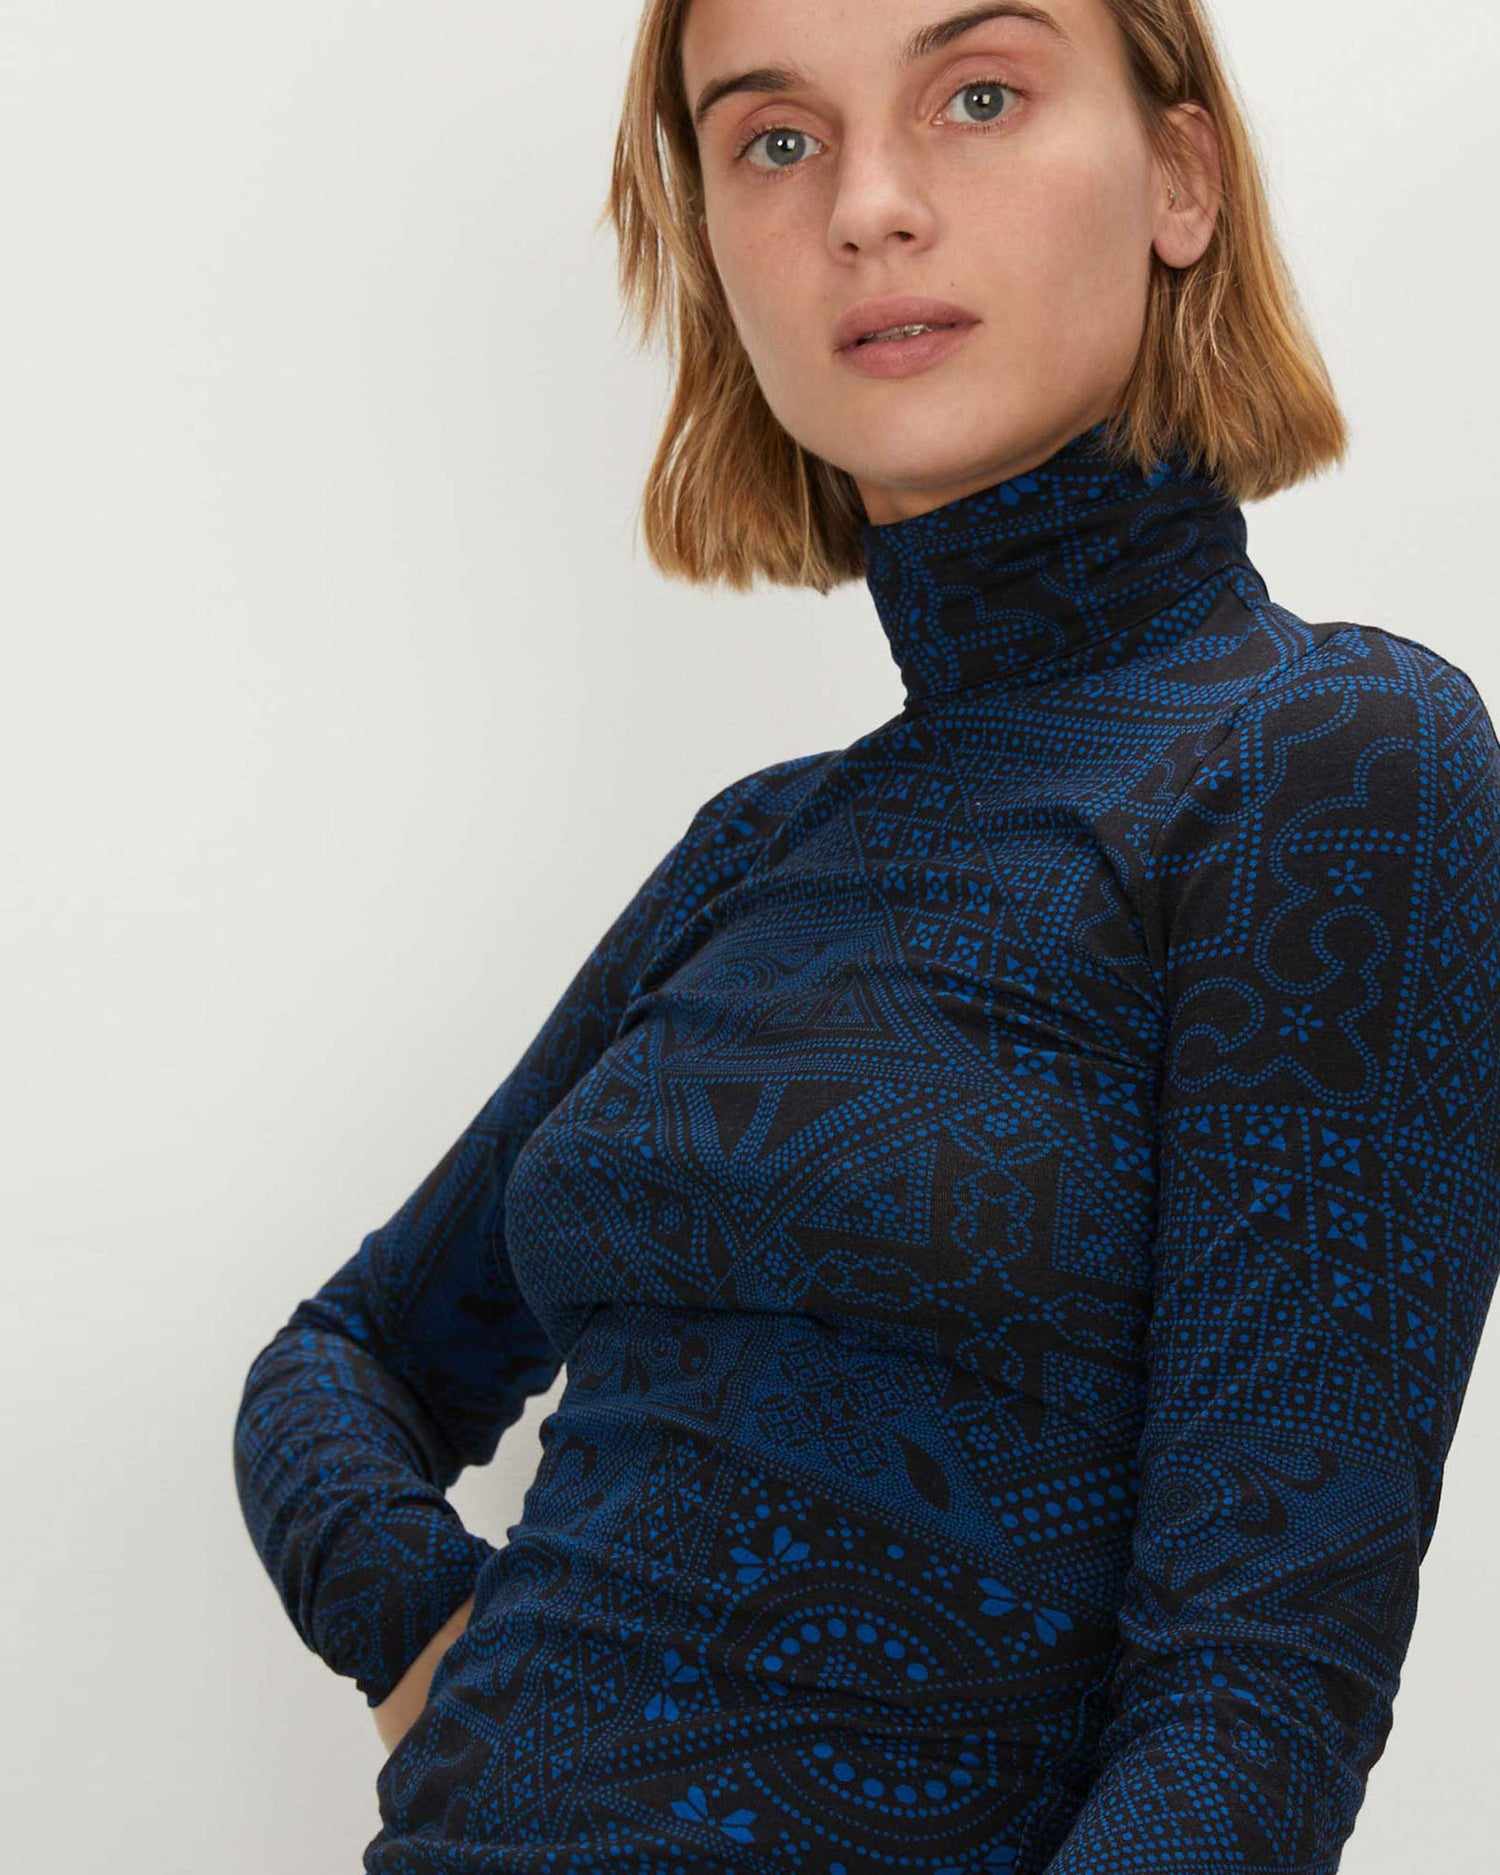 Turtleneck | Black Blue Batik